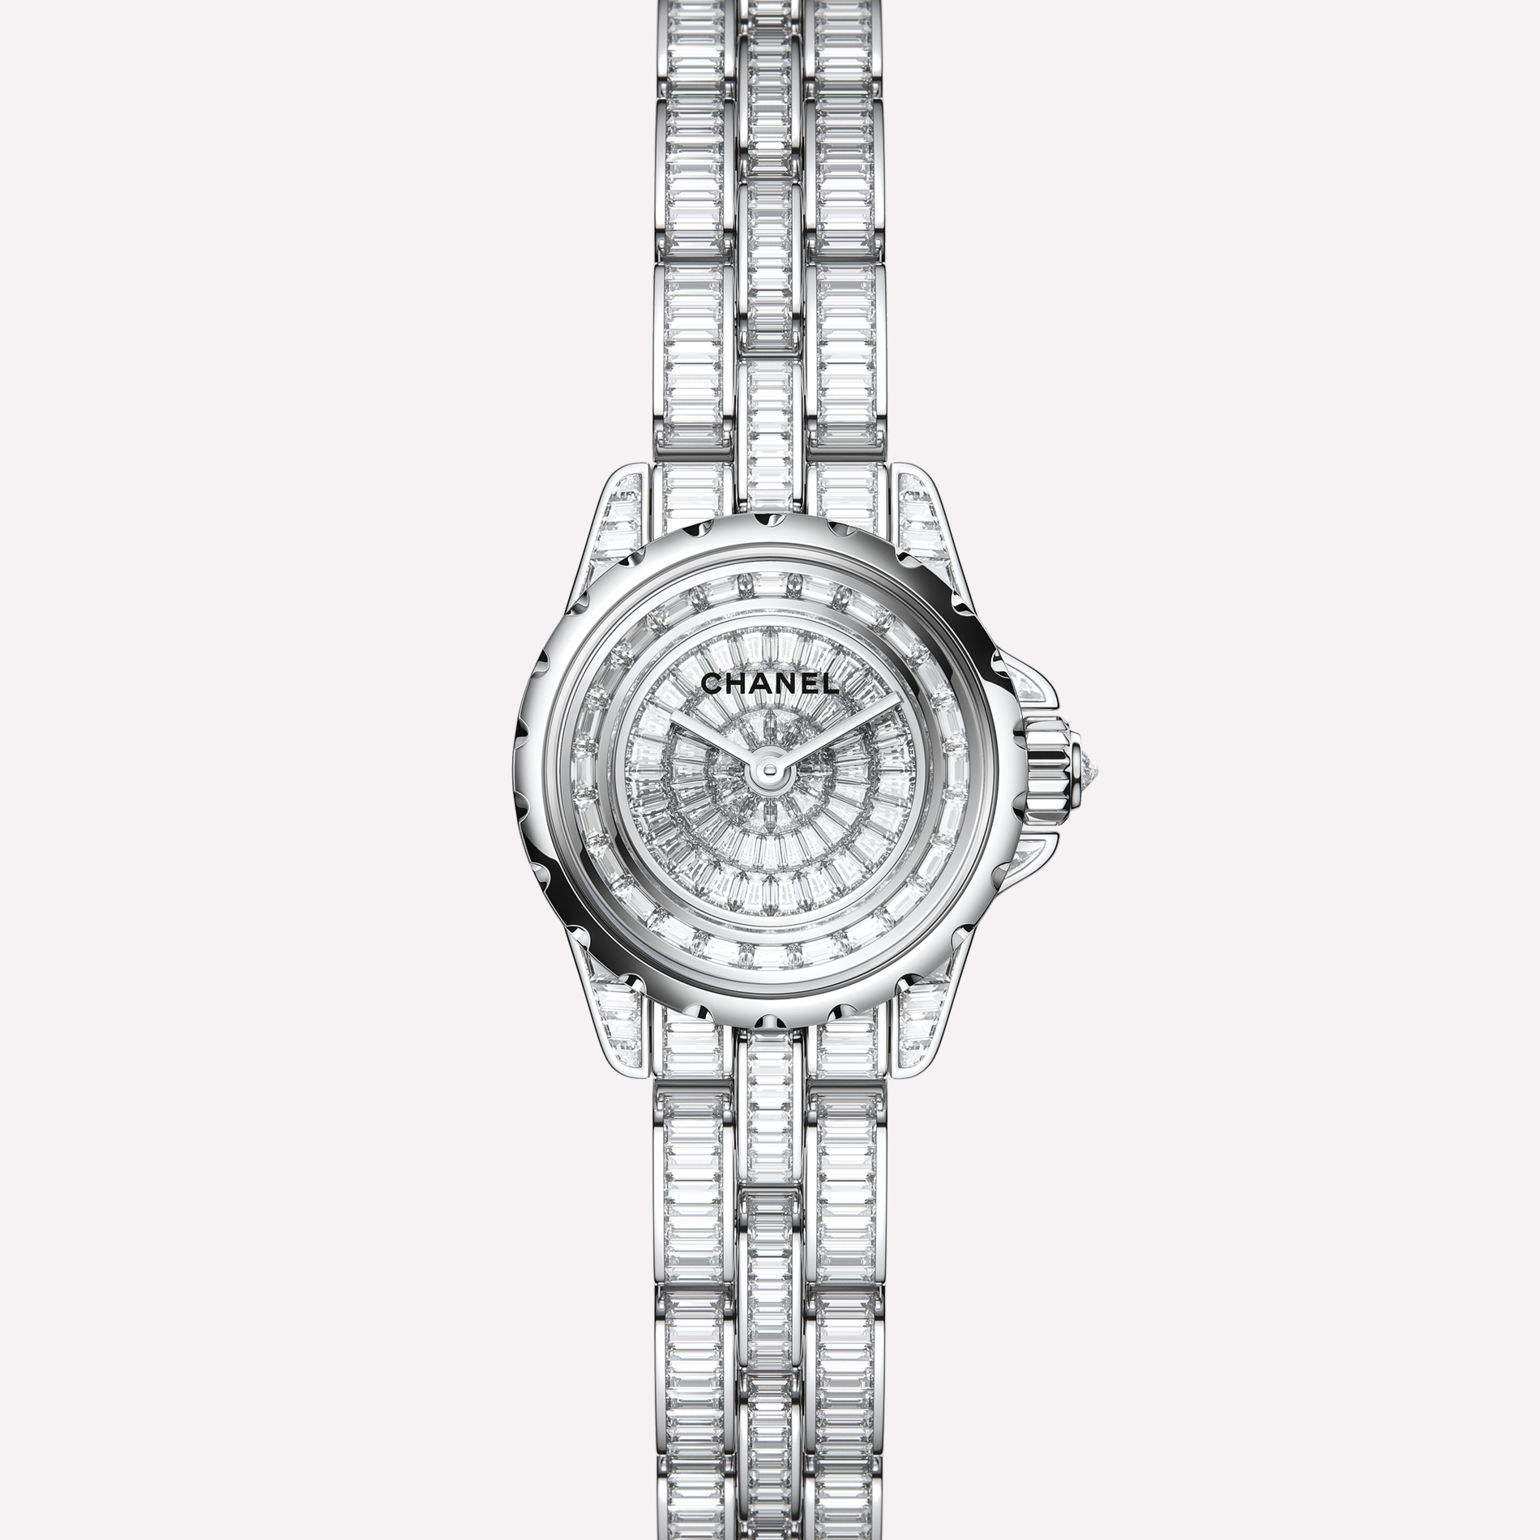 J12·XS High Jewelry Watch White gold, case, dial, flange, and bracelet set with baguette-cut diamonds